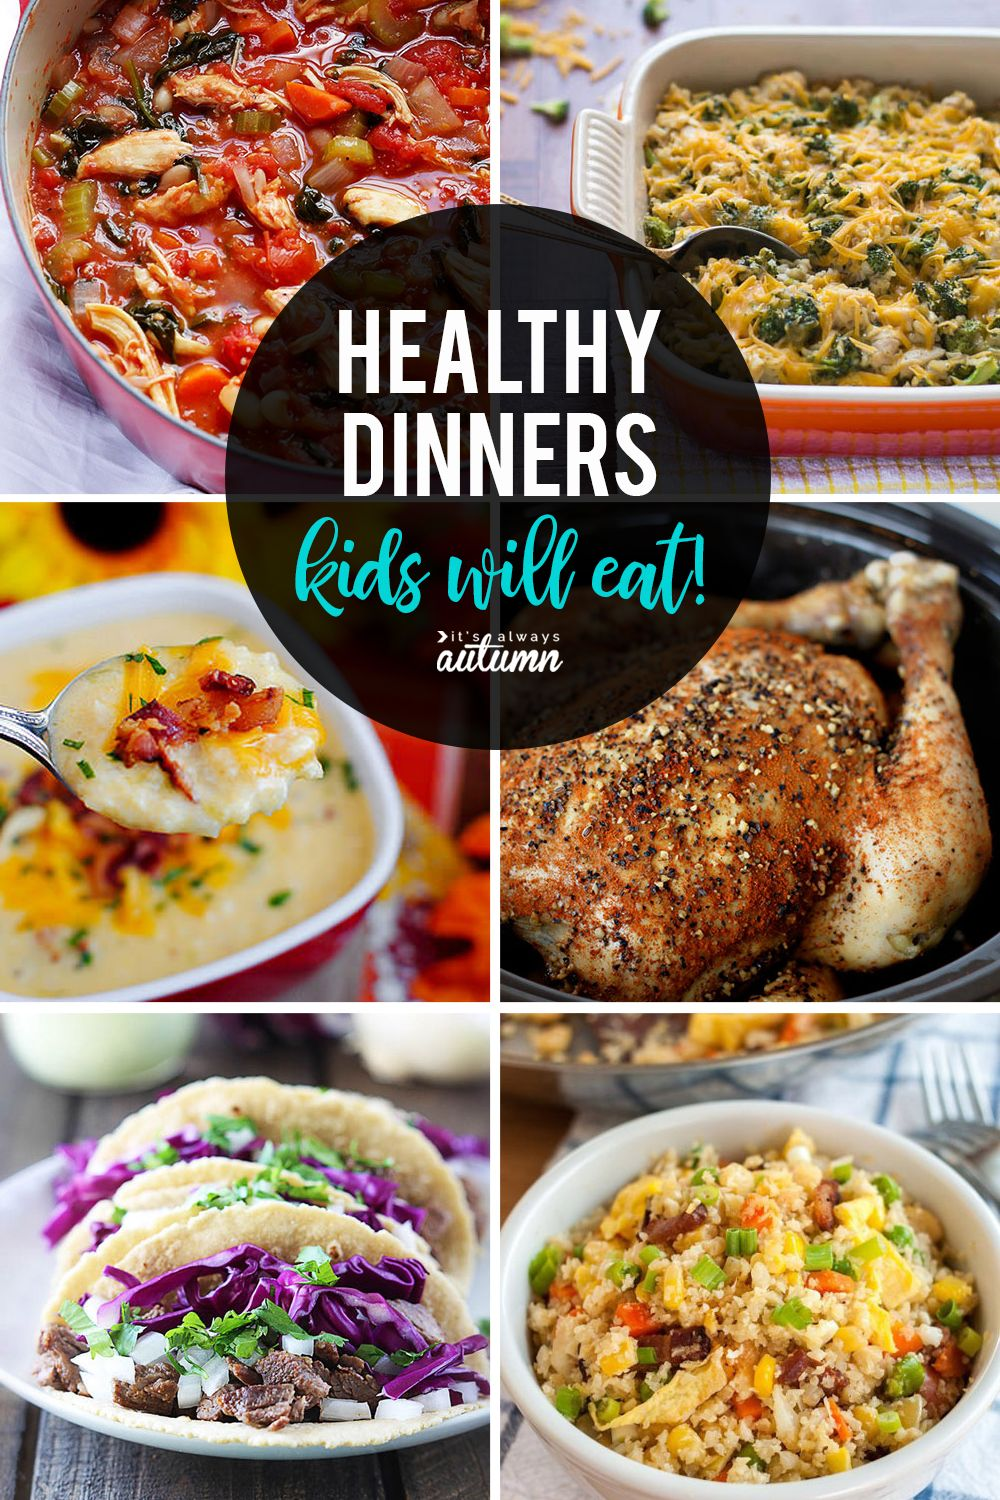 Have picky eaters? Click through for 20 healthy recipes that kids will love. Healthy dinner ideas for families. #itsalwaysautumn #recipes #healthymeals #healthyrecipes #healthydinners #maindish